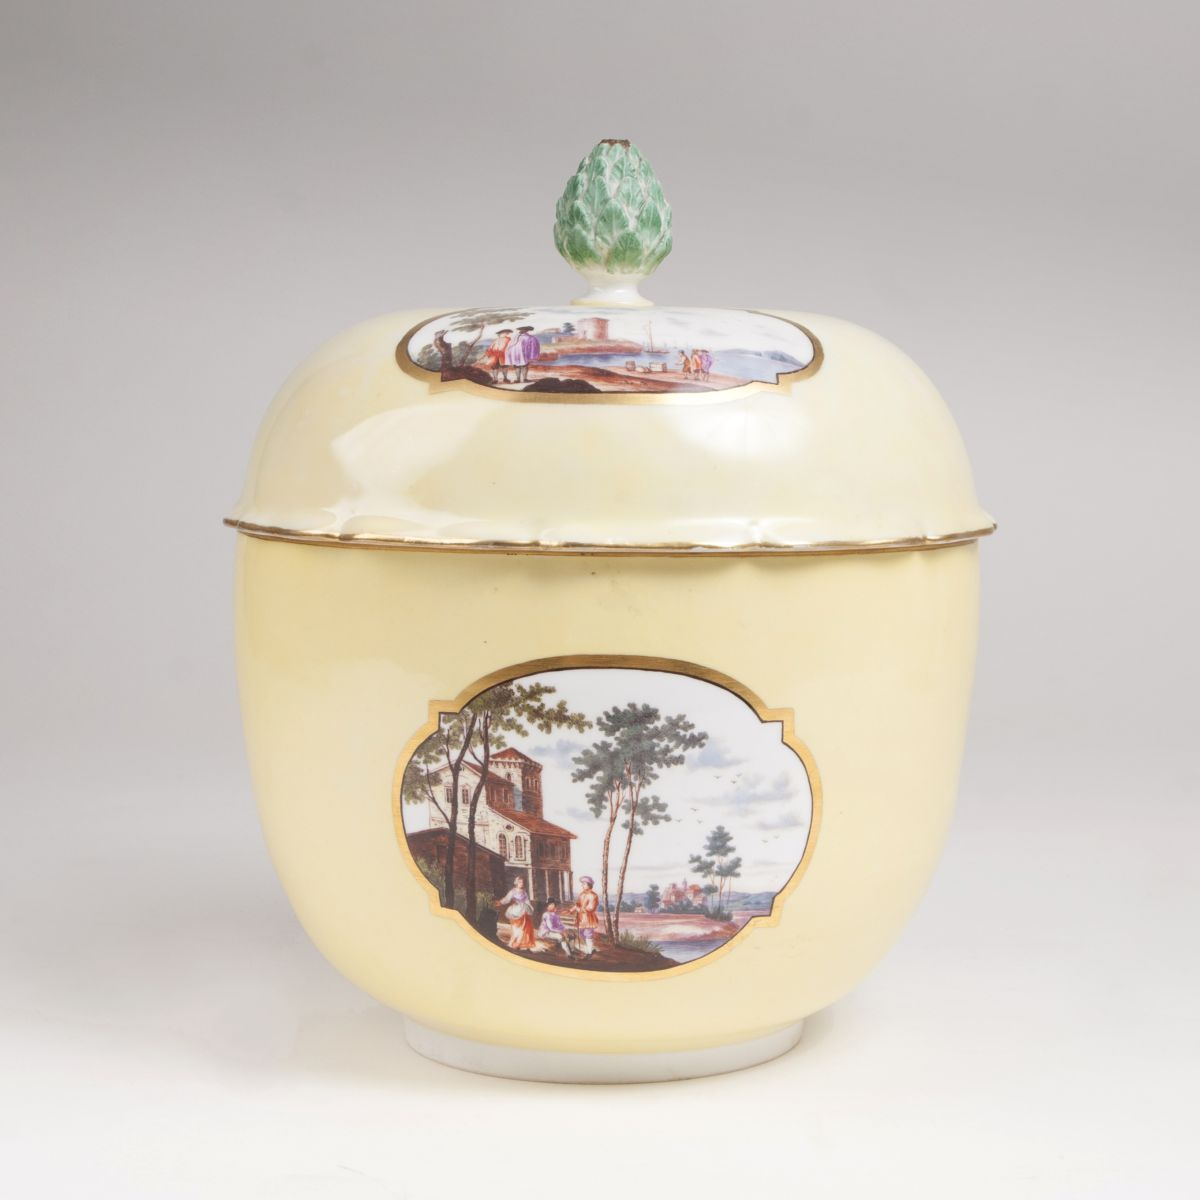 A lidded tureen with fine harbour scenes on yellow ground